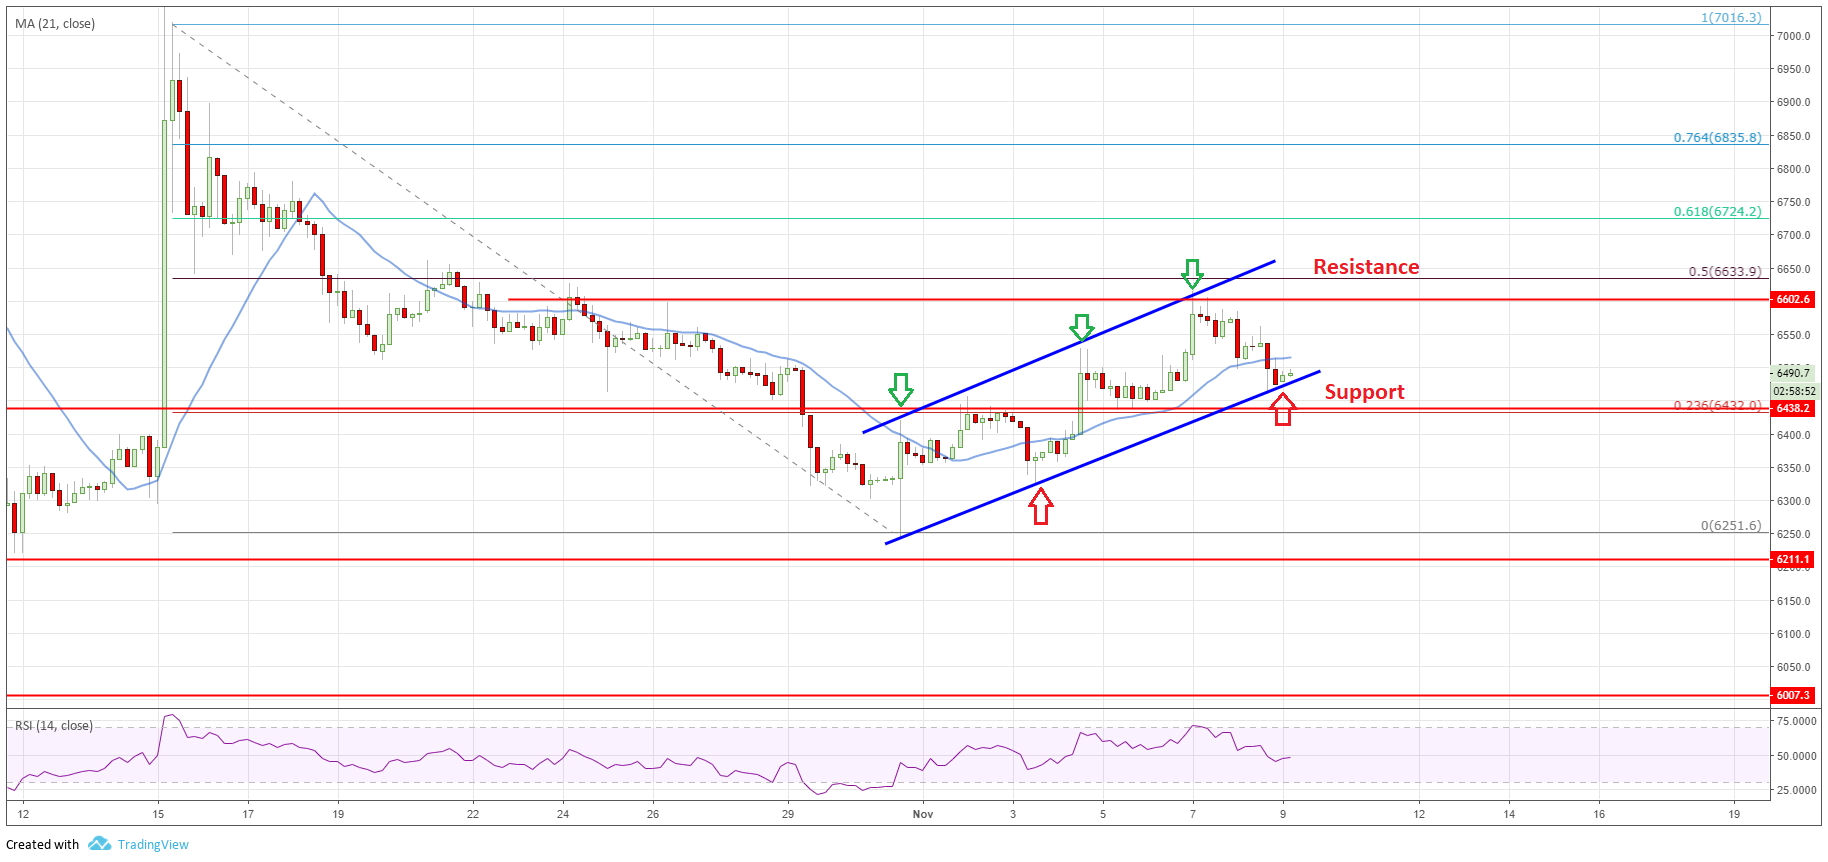 BTC chart of Bitcoin price analysis